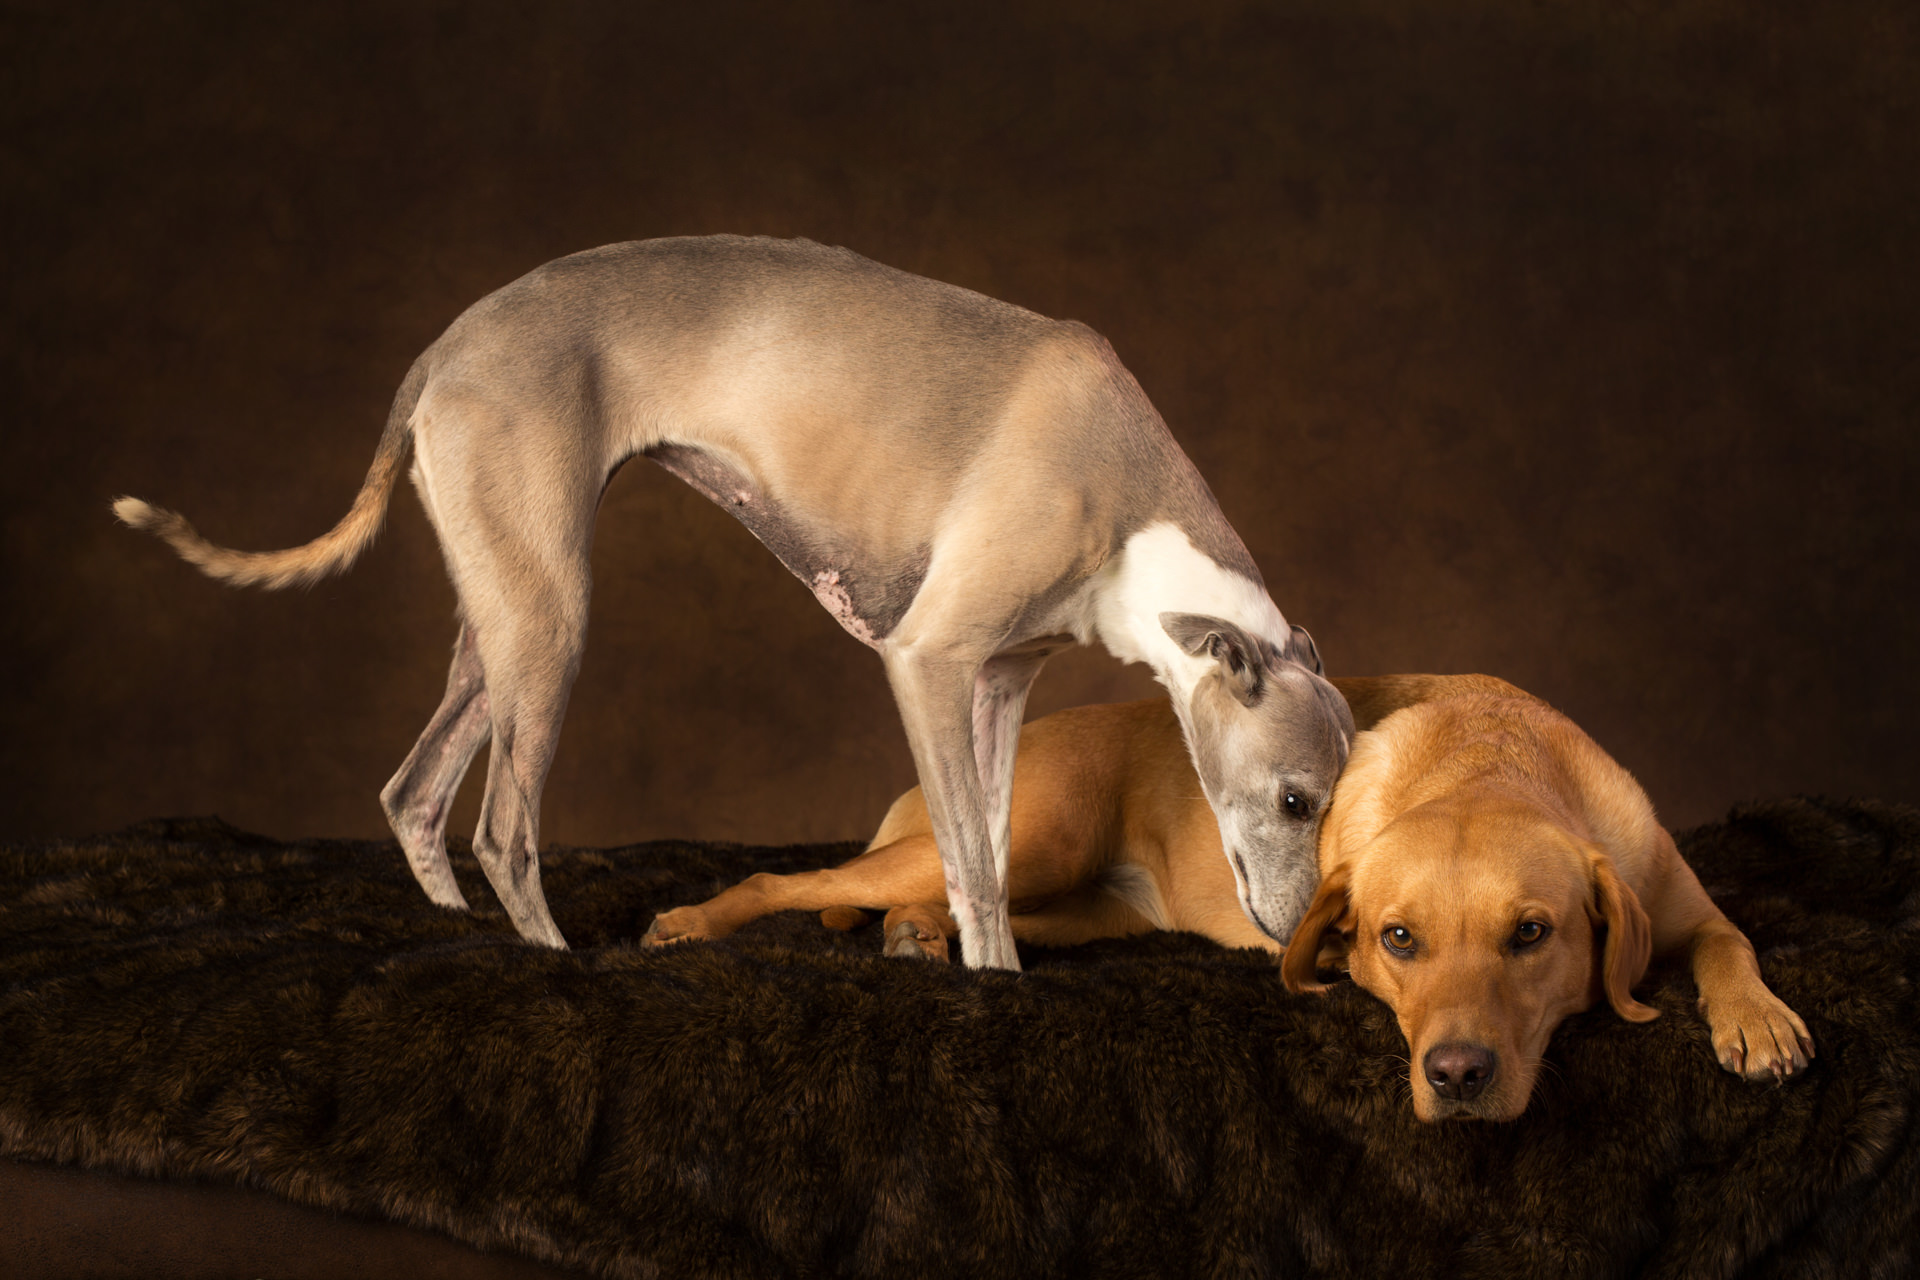 The-Artful-Dog-Studio-Dog-Photographer-11-1